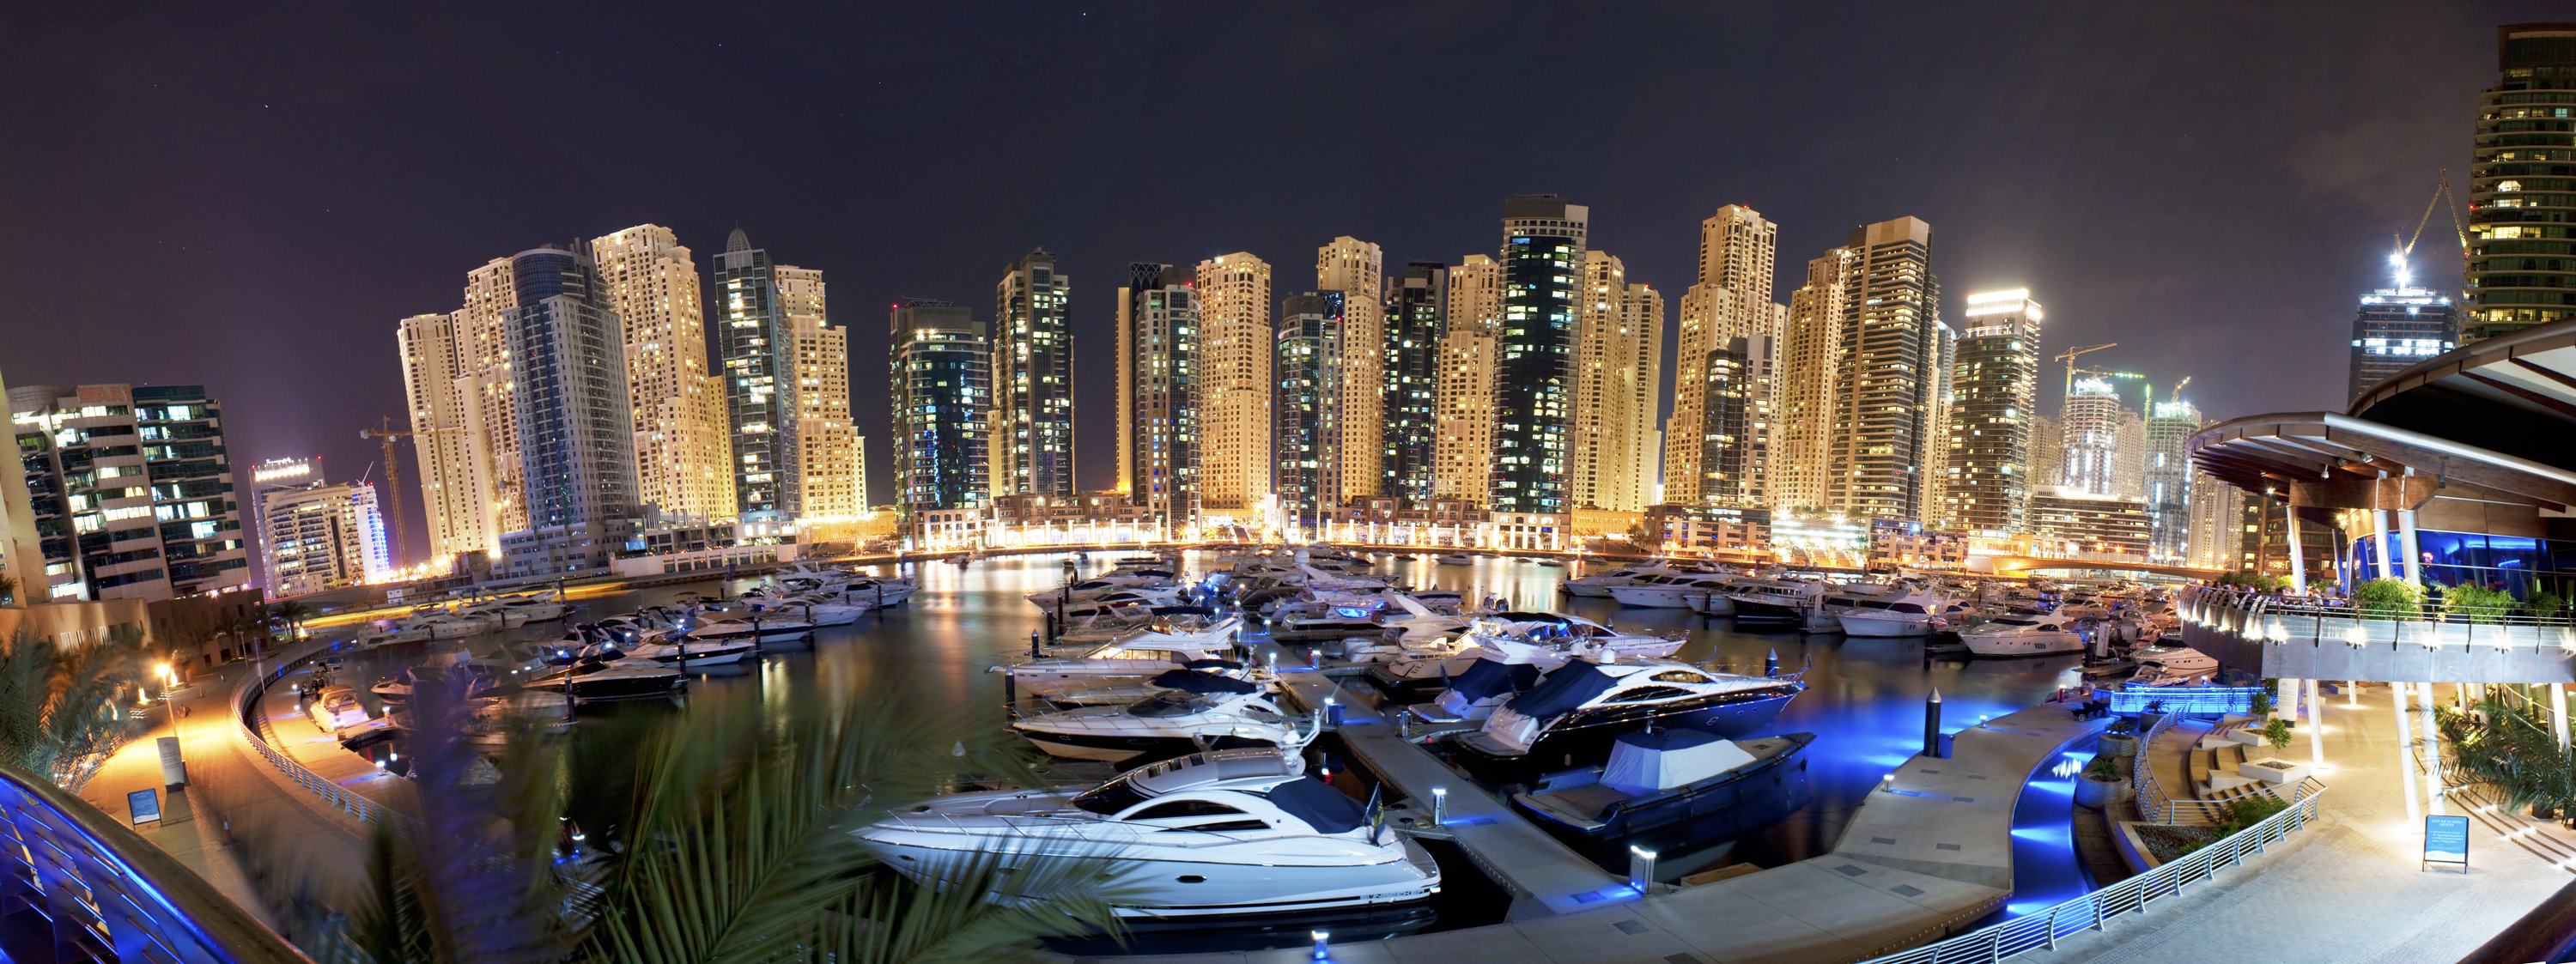 Dubai - Dubai Marina by Night